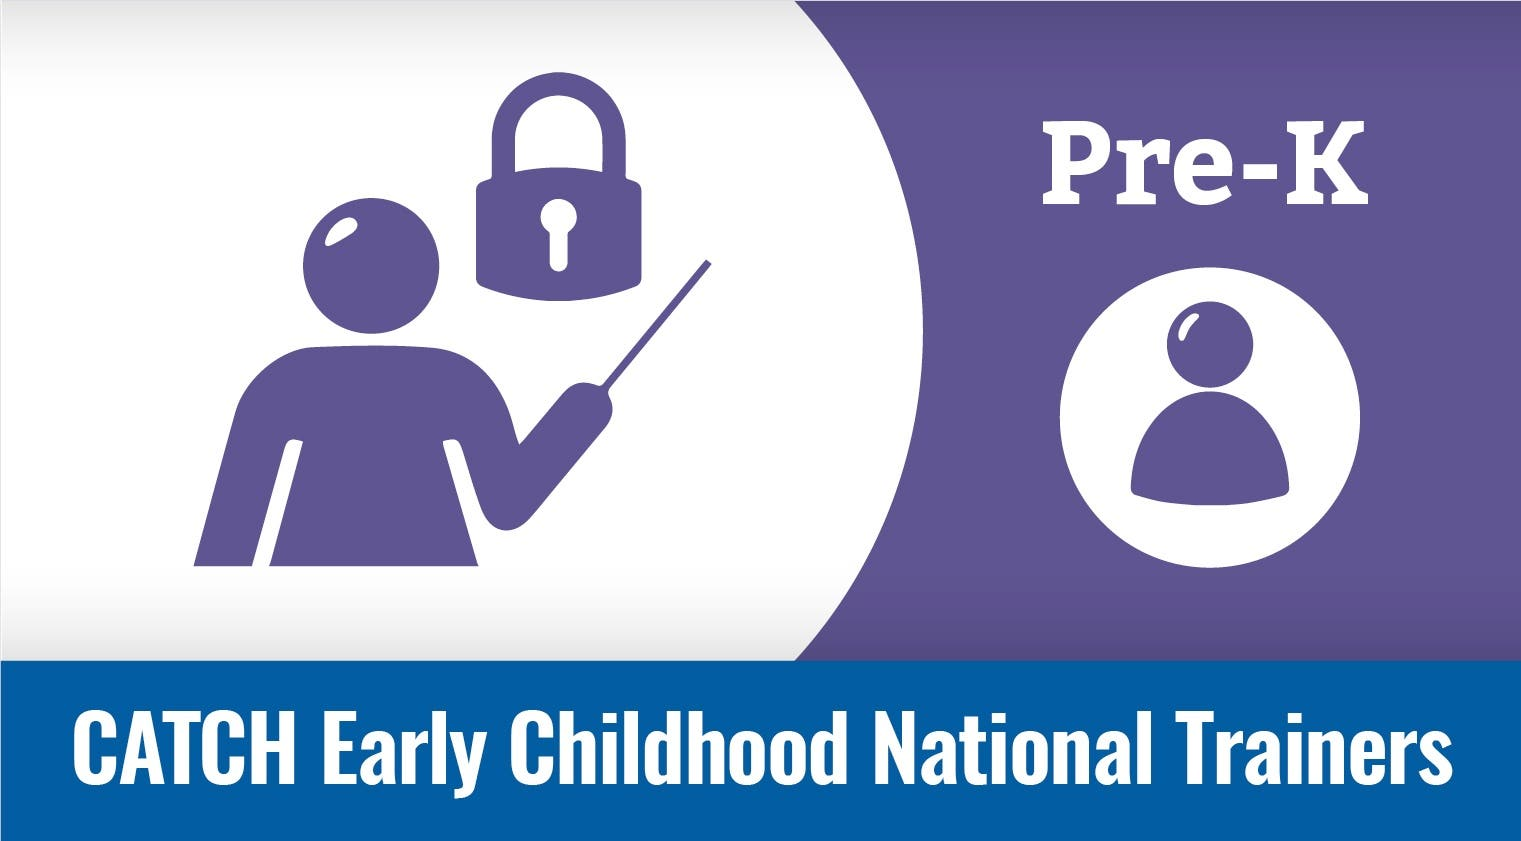 National Trainers - CATCH Early Childhood